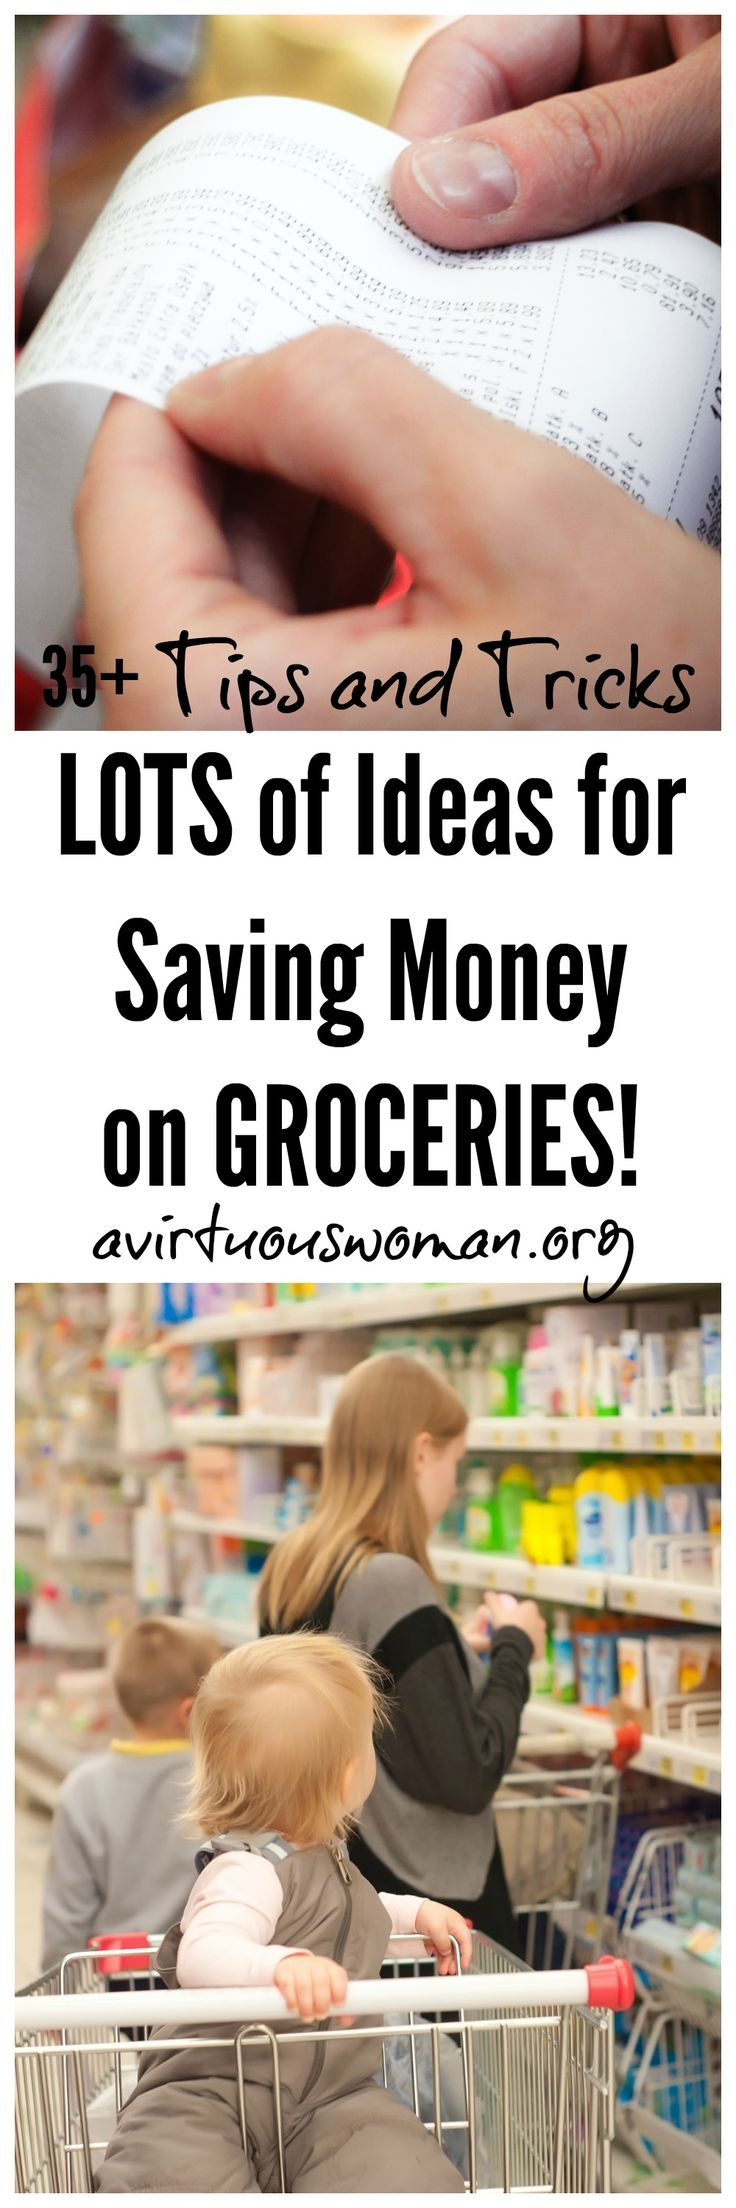 LOTS of ideas for saving money on groceries! save money on food frugal meal ideas, meal planning tips and budget recipes!